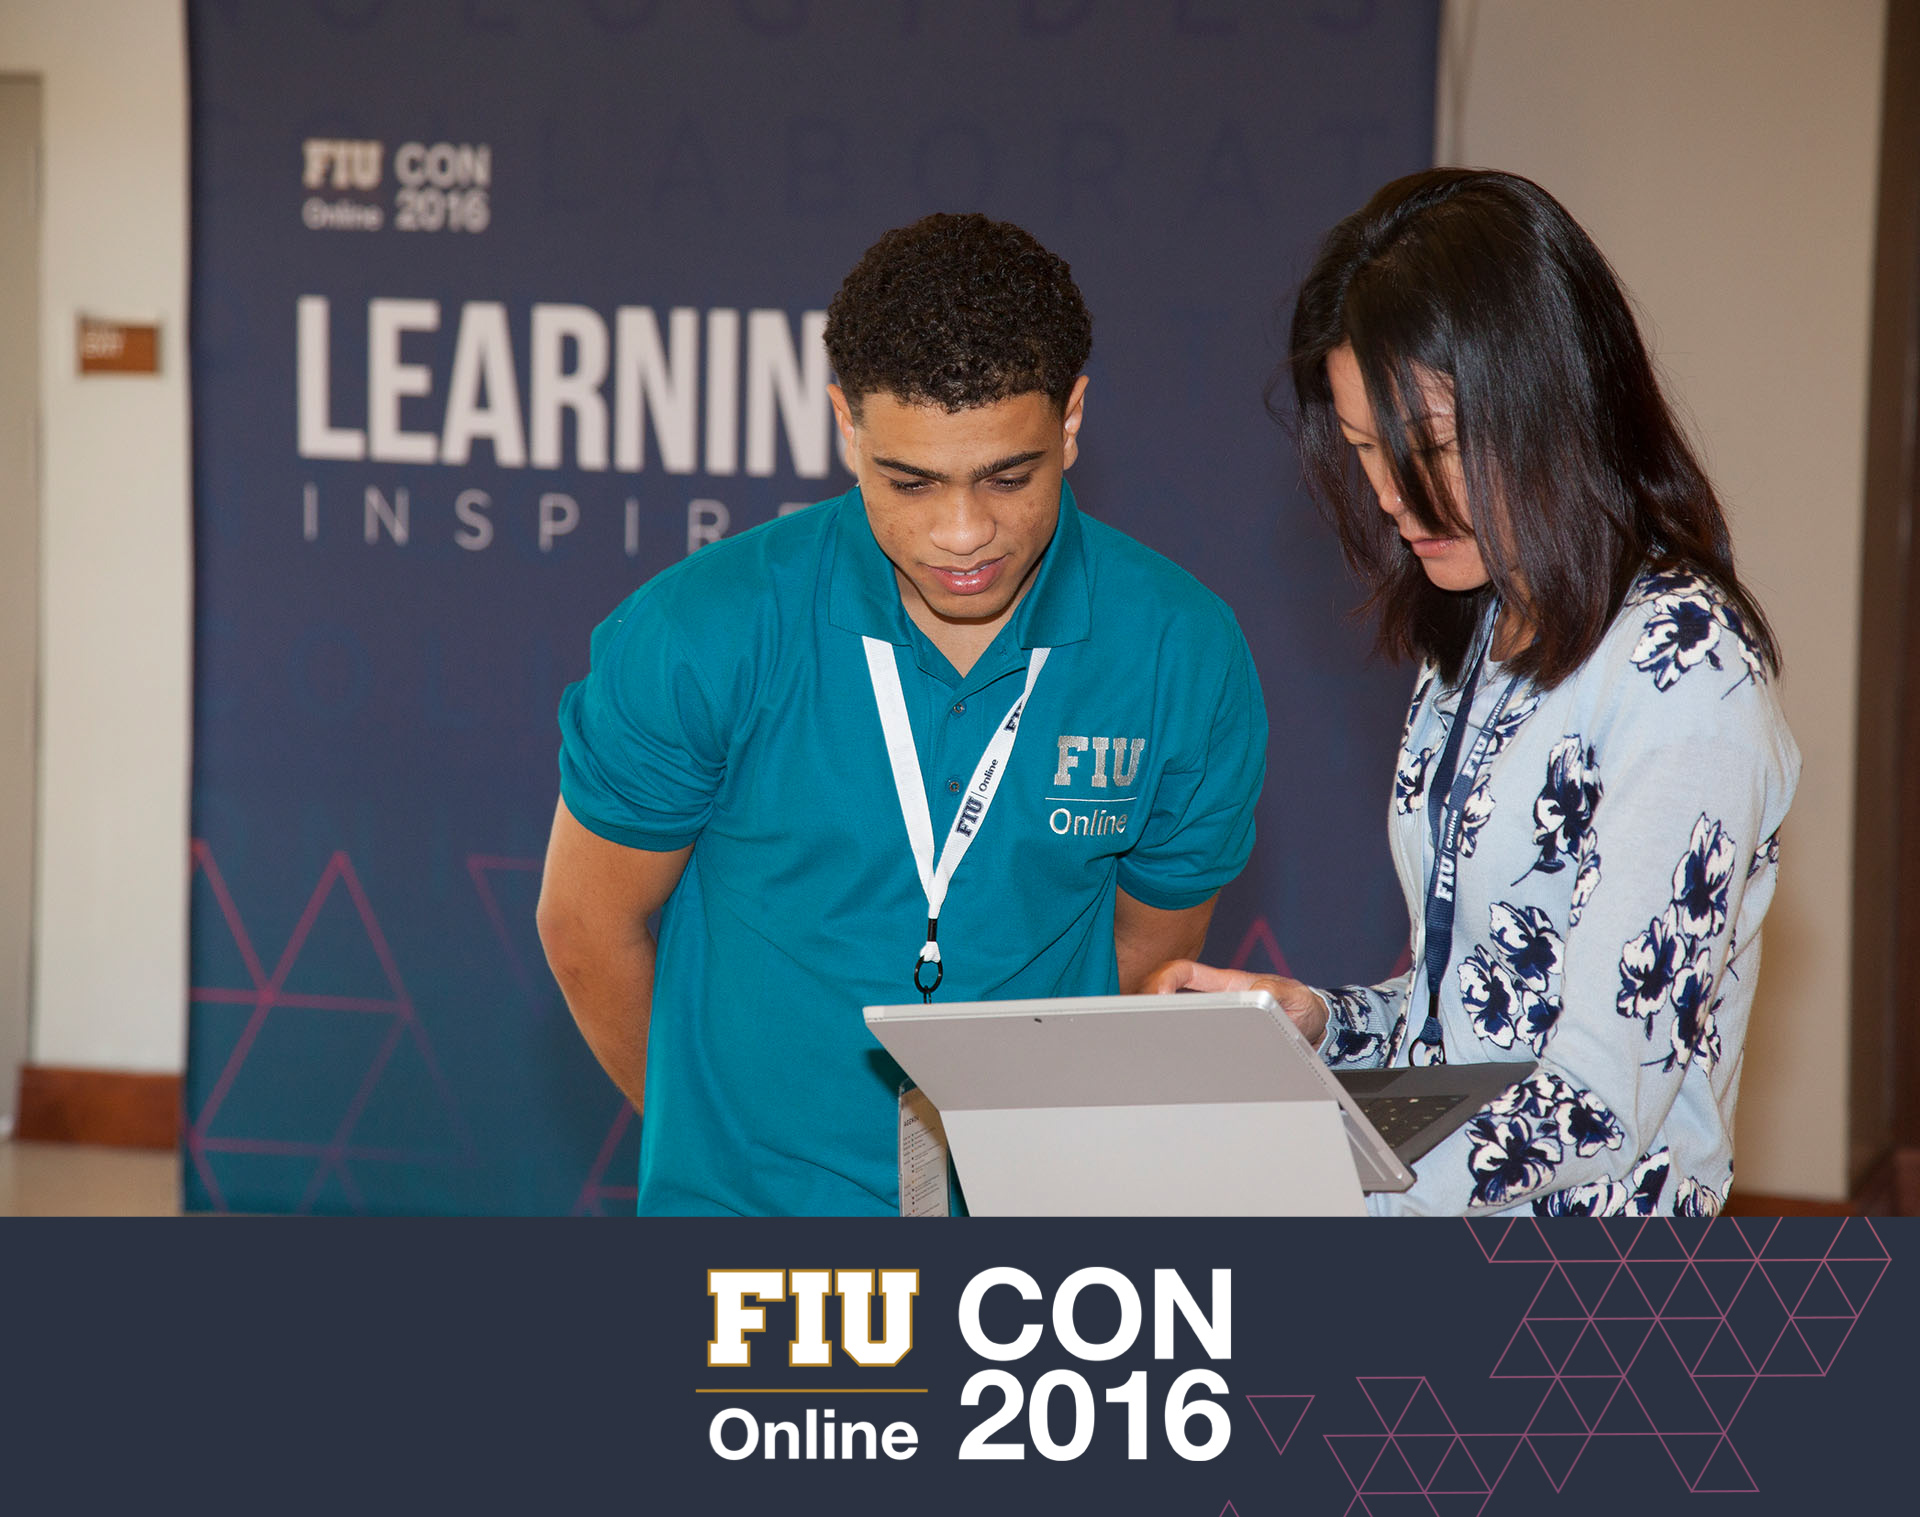 122.jpg FIU Online conference photos